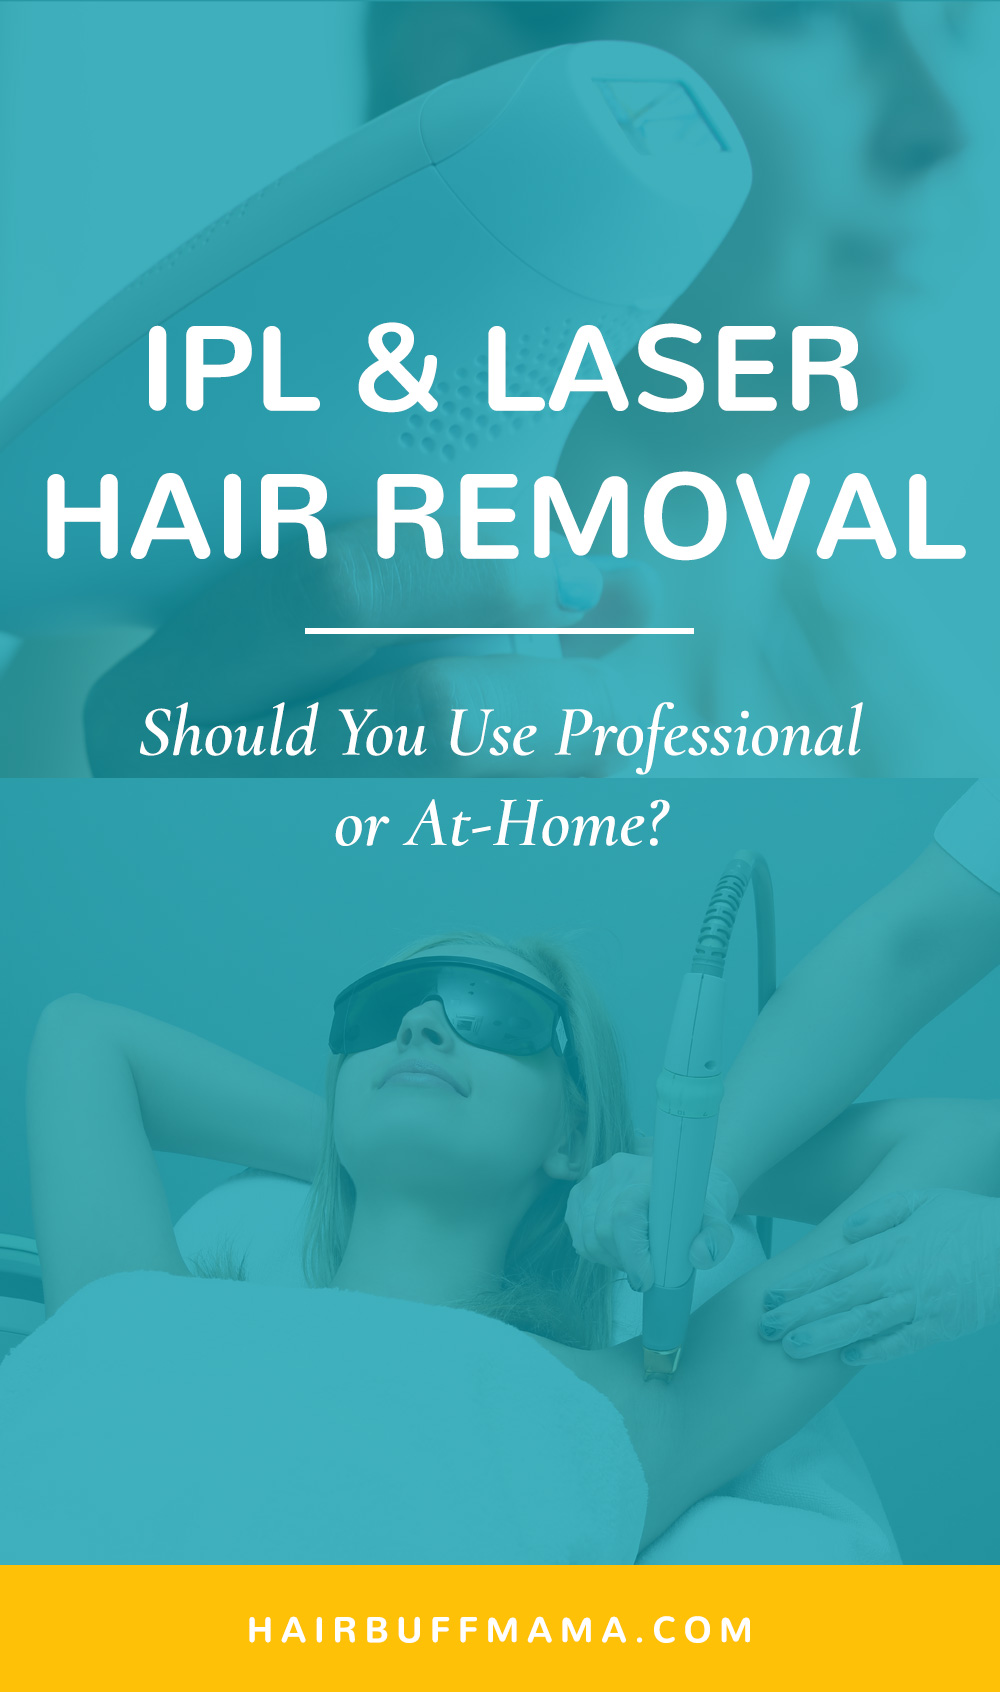 IPL and Laser Hair Removal: Should You Use Professional or At-Home?